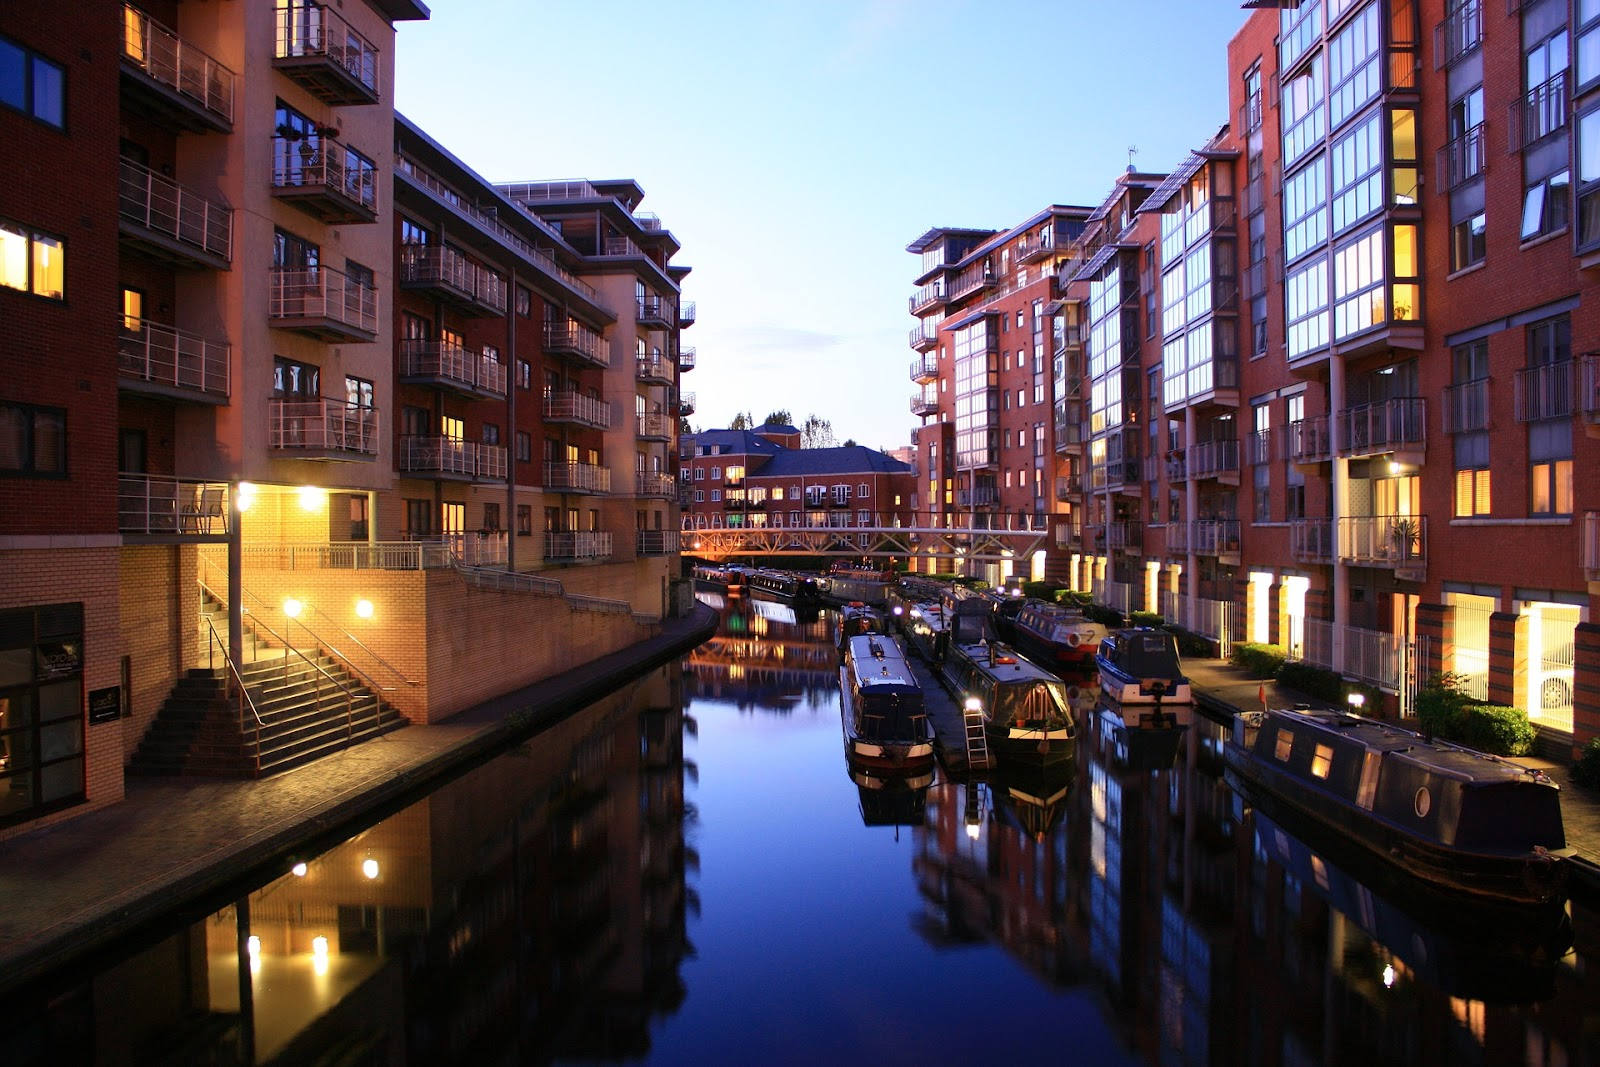 birmingham river during sunset. parked boats surrounded by red brick buildings with lights on, no people are seen. beautiful sunset in united kingdom